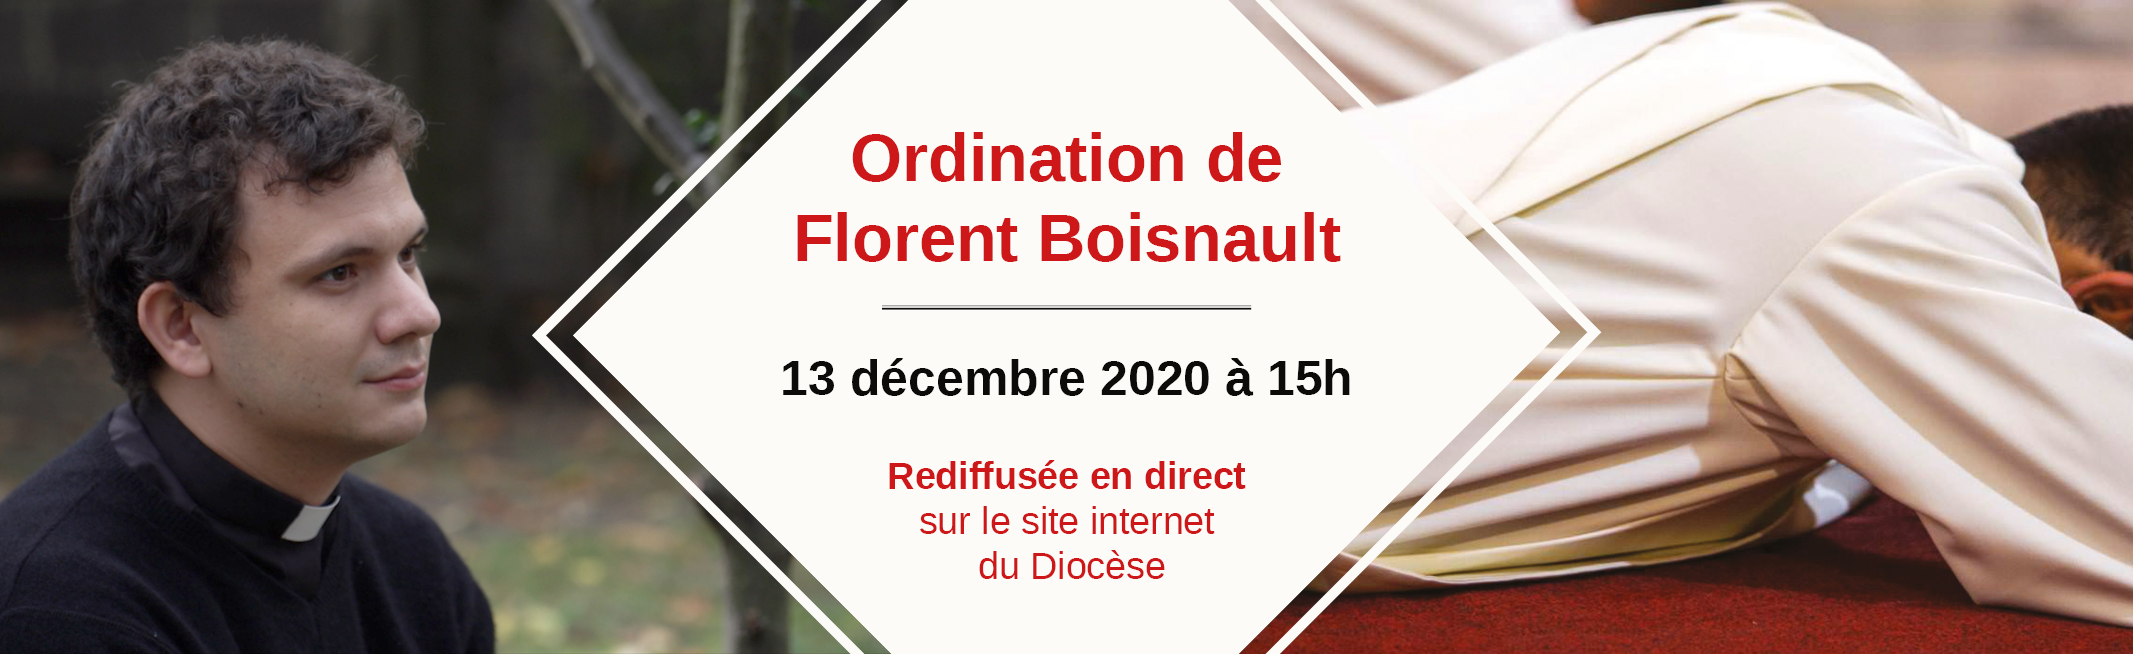 Ordination de Florent Boisnault